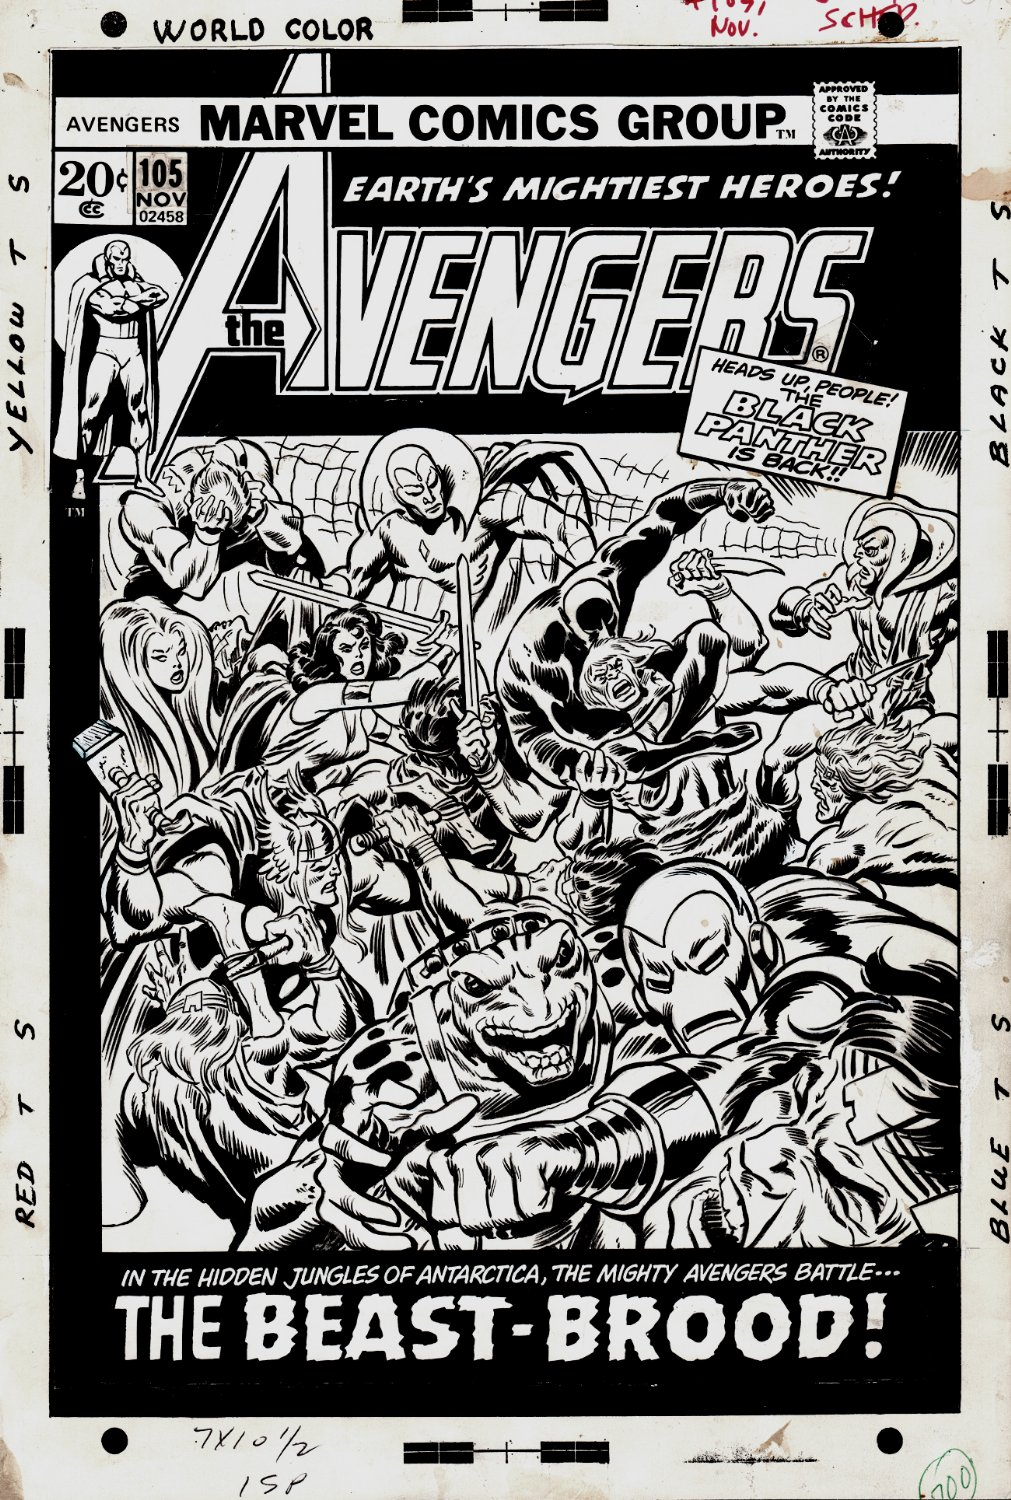 Avengers #105 Cover (Black Panther Rejoins Avengers! With Hawkeye, Iron Man, Thor, Vision, Sif, ALL Battling In the Savage Land!) 1972